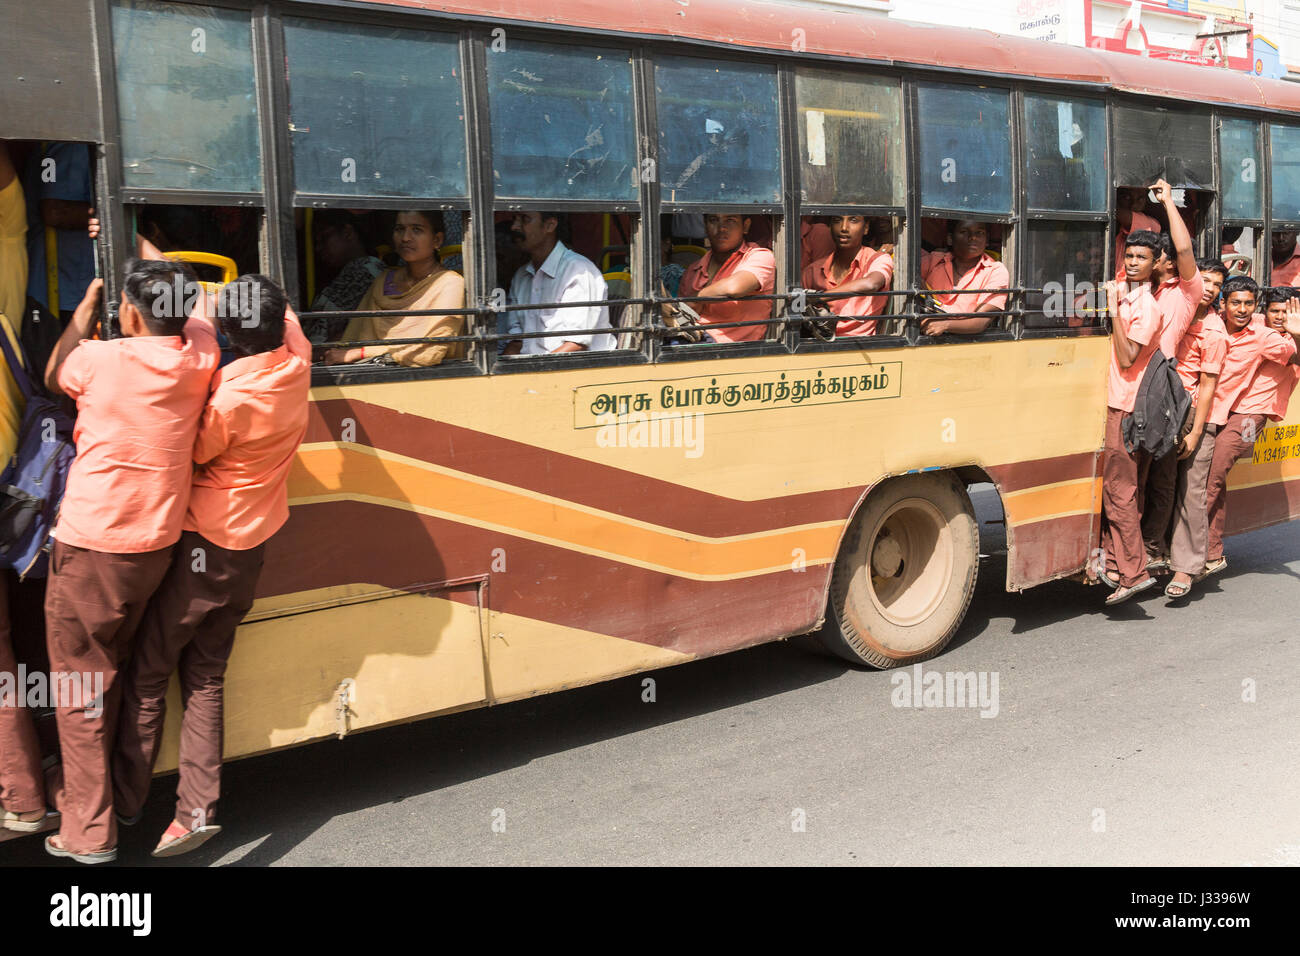 a journey by an overcrowded bus Short essay on a journey in an overcrowded bus (free to read) most of the buses in delhi are overcrowded traveling by a dot's bus is an ordeal last sunday, i had to experience such an ordeal.